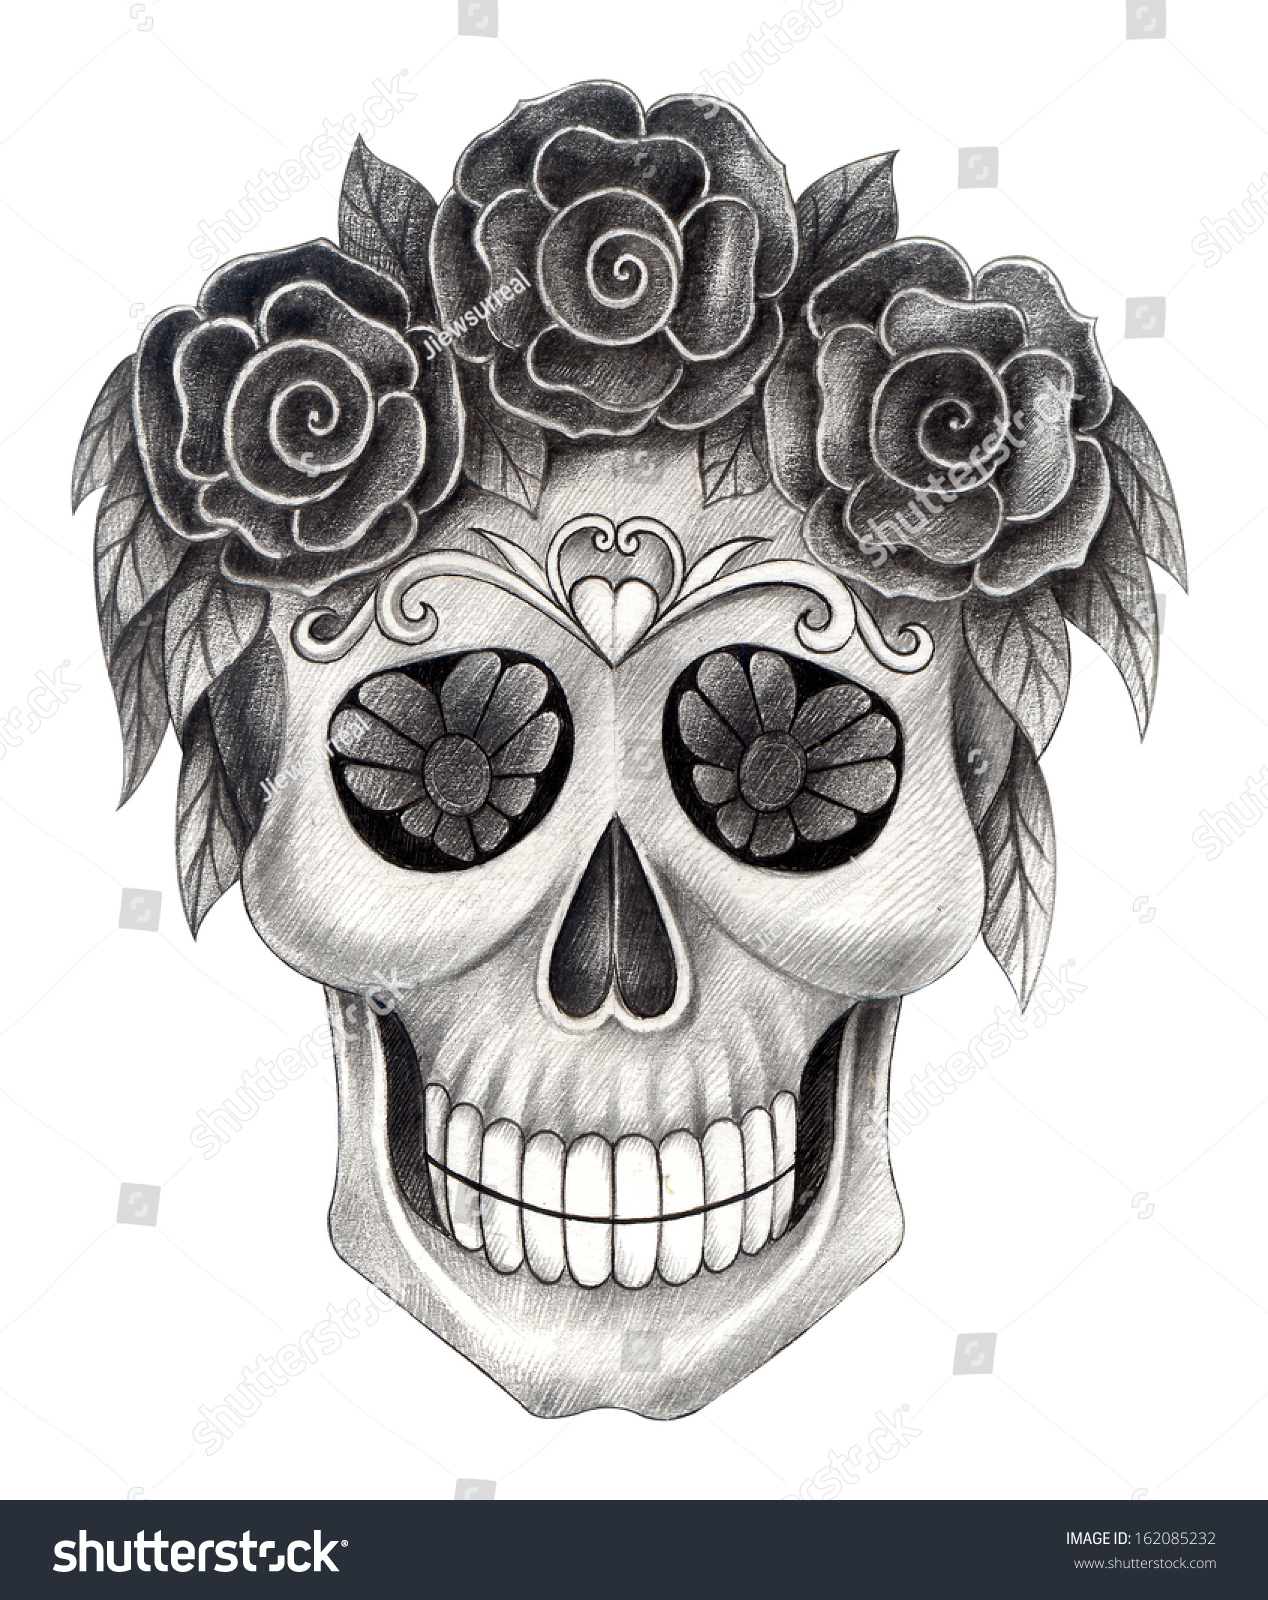 essays on day of the dead Day of the dead day of the dead or d a de los muertos is a mexican holiday that focuses on the gathering of friends and family to celebrate the lives of.